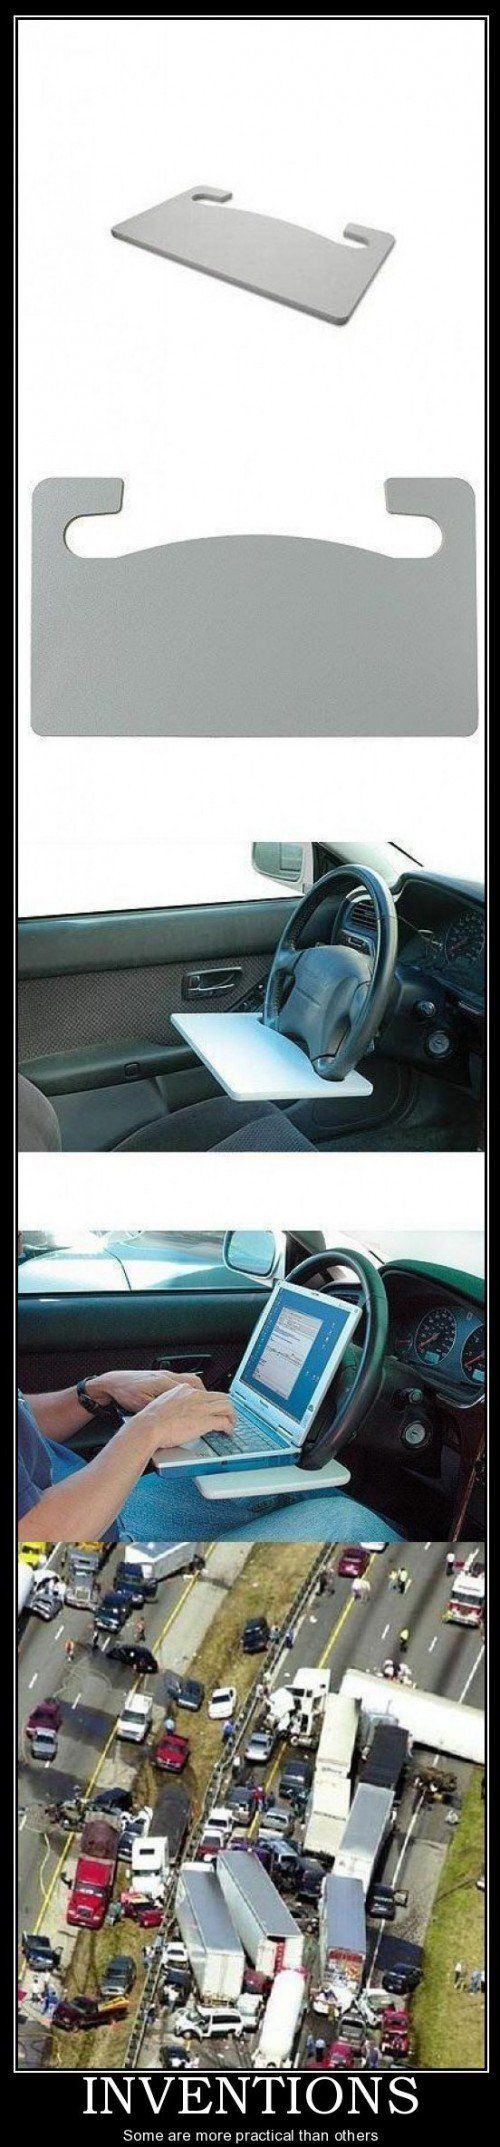 funny-invention-laptop-steering-wheel